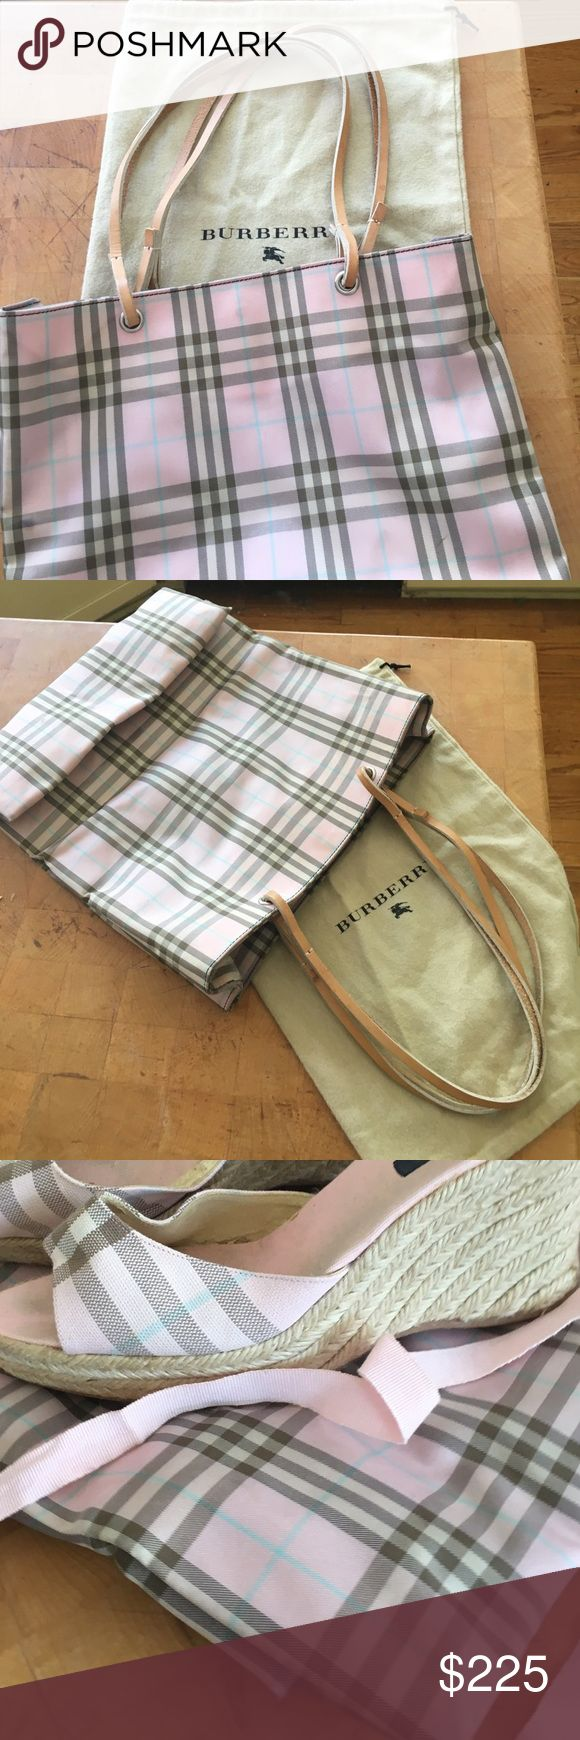 "BURBERRY PinkNovacheck Canvas ToteWTan Lthr Handle Super Cute, perfect size for everyday! It's in GREAT shape, no rips, it COULD use a cleaning if you'd like, I didn't have time, sorry, it's ABSOLUTELY useable ""as is"" and didn't bother me one bit! I also have my matching Sandals  that are pictured Posted in my closet so check em out. I always wore them TOGETHER and they're just SO cute and feminine not to mention Classy and Uber STYLISH!!! 😍👜👡 Burberry Bags Totes"